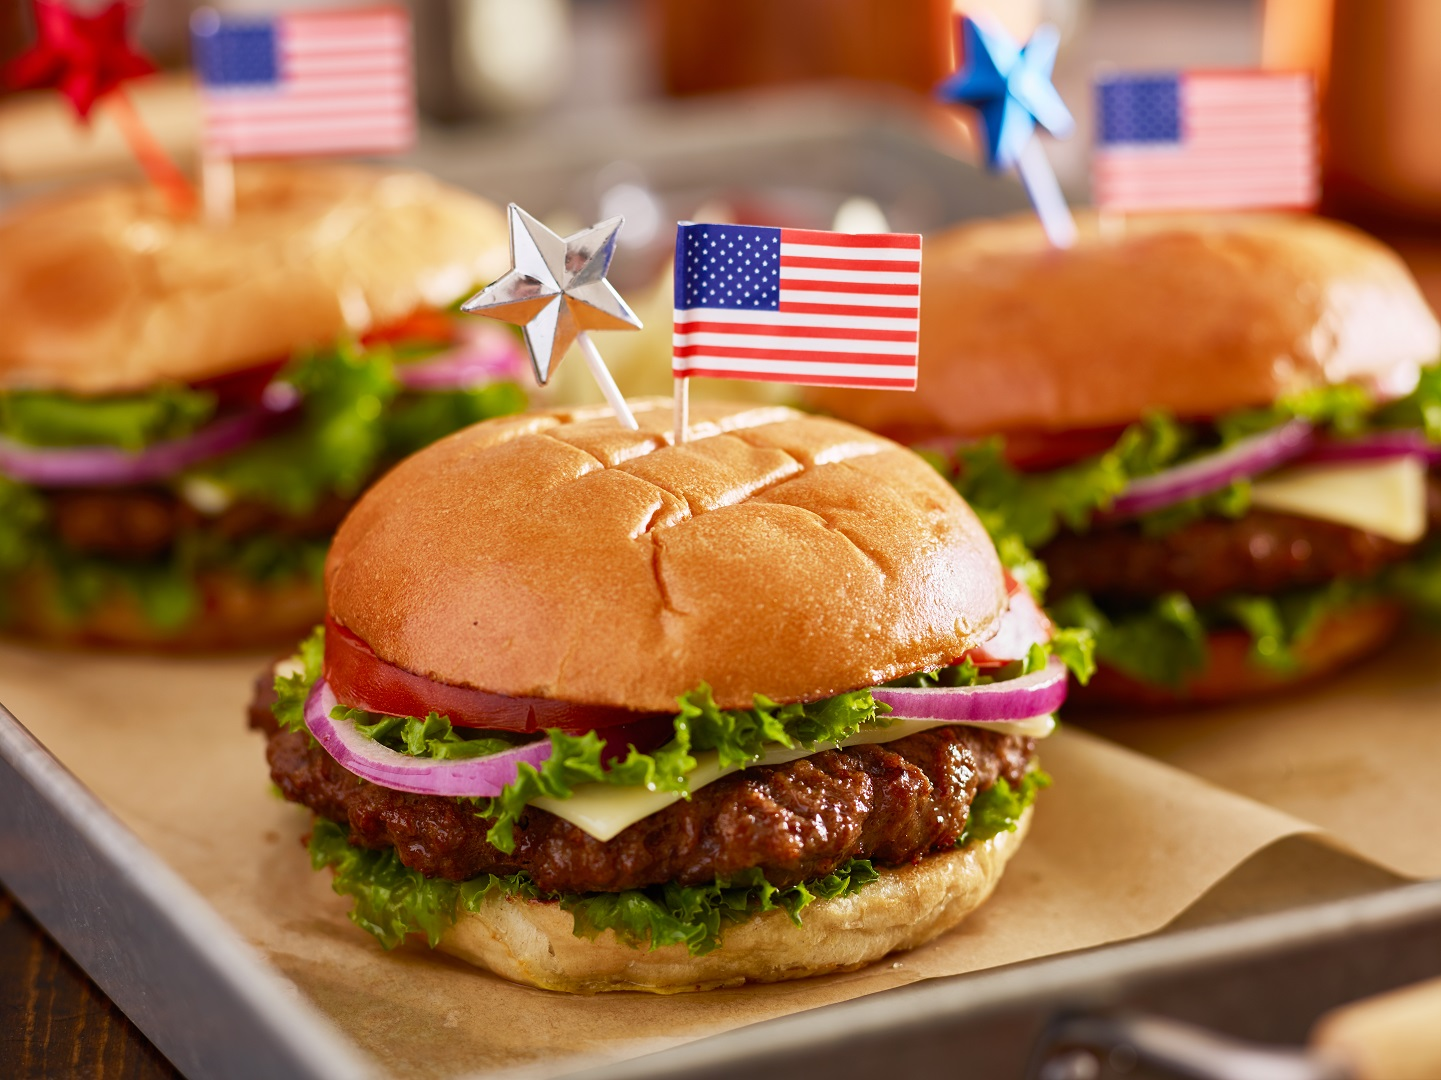 Burgers with American Flag and Stars Toothpick Decoration